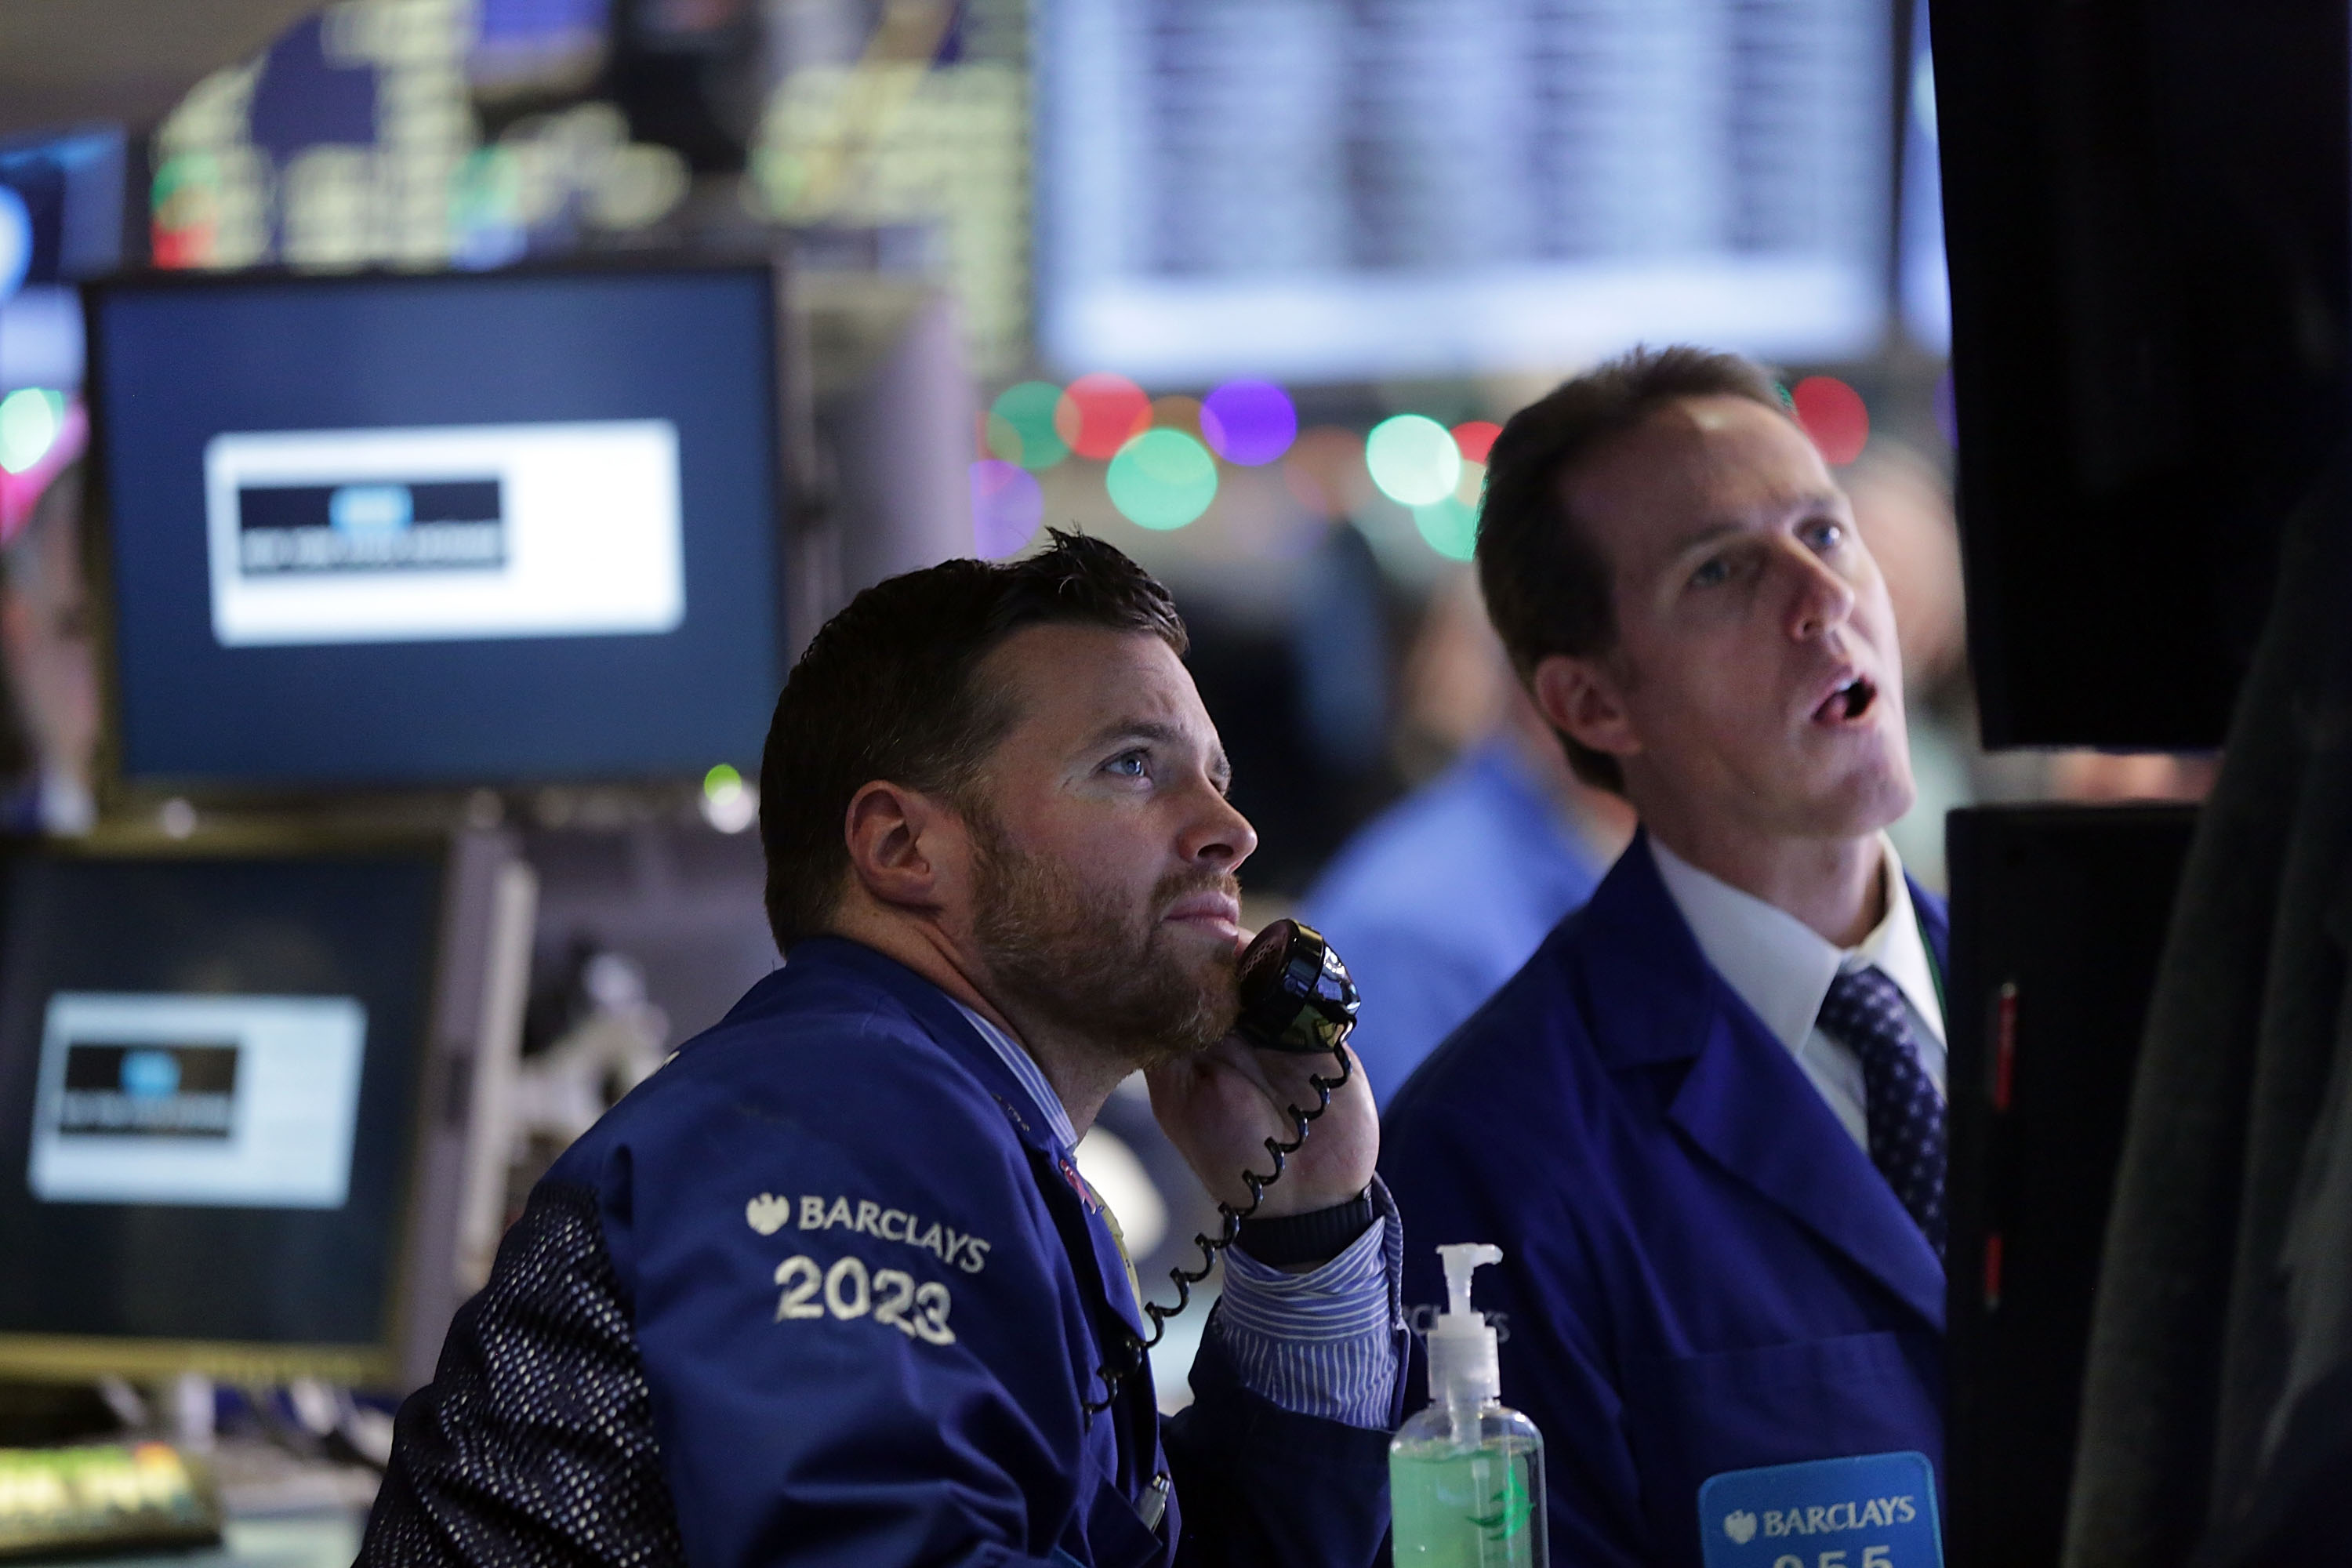 Markets Open In New York As Global Stocks Rise